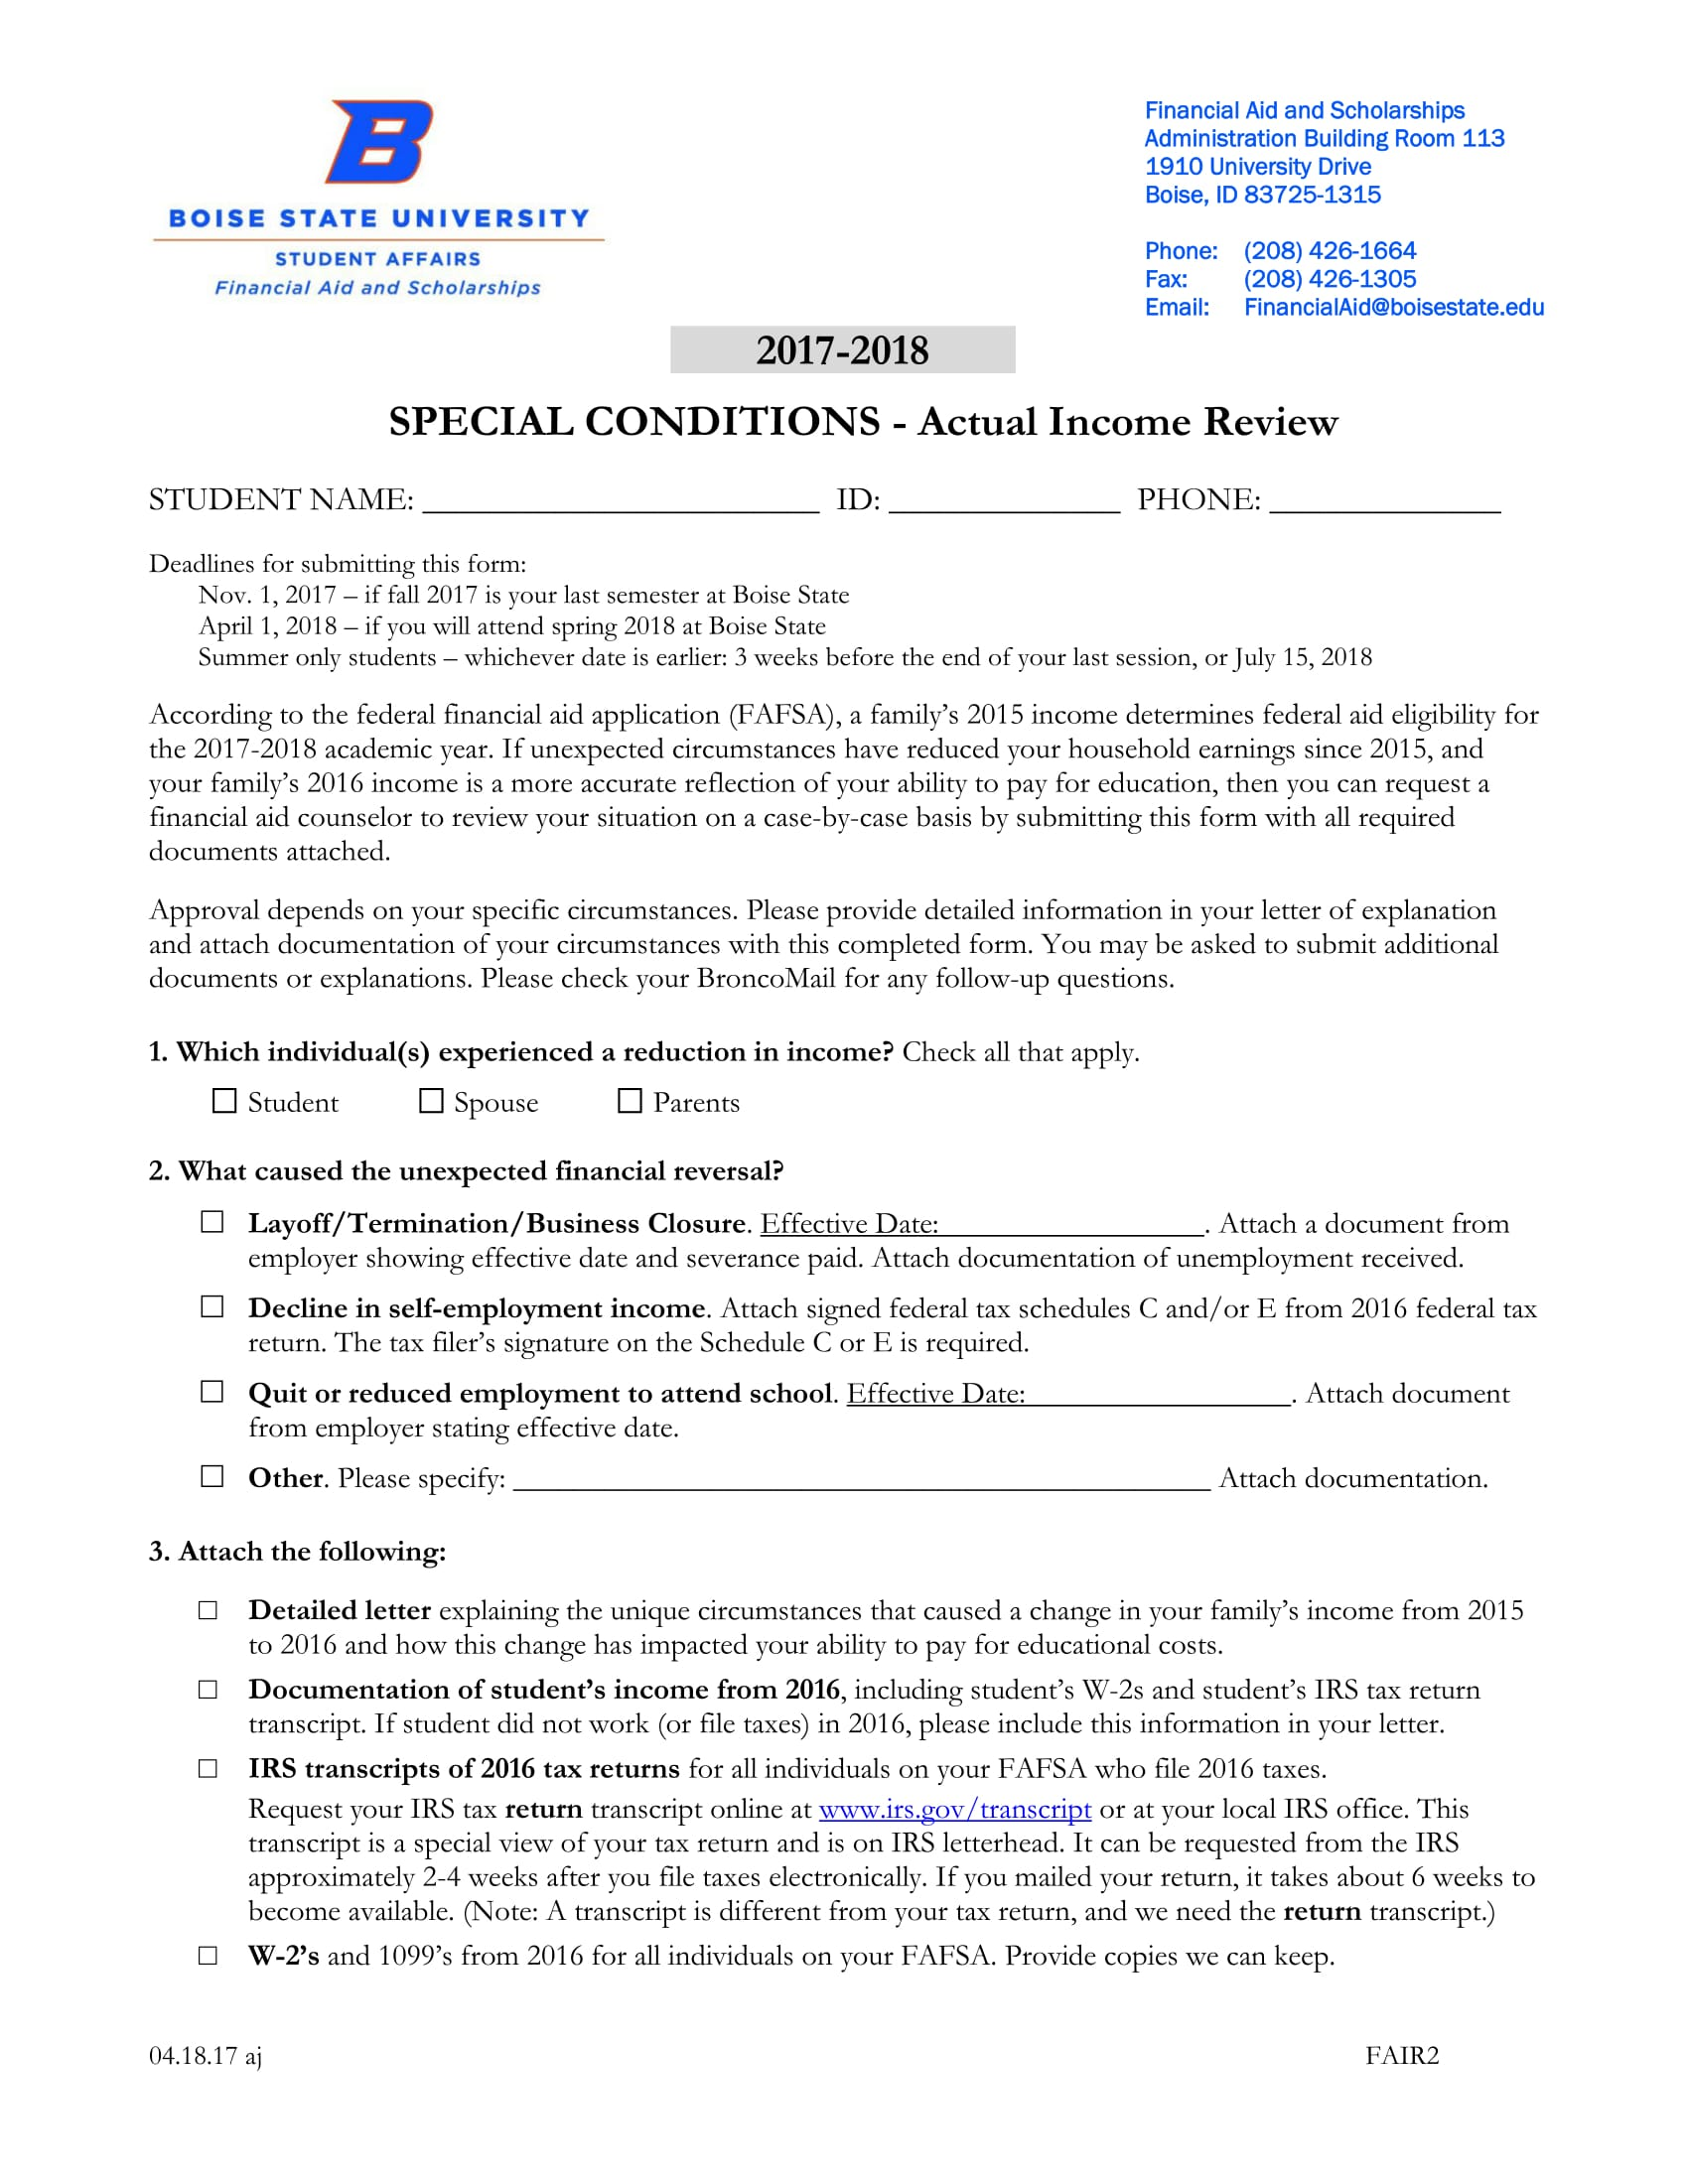 actual income review form 1